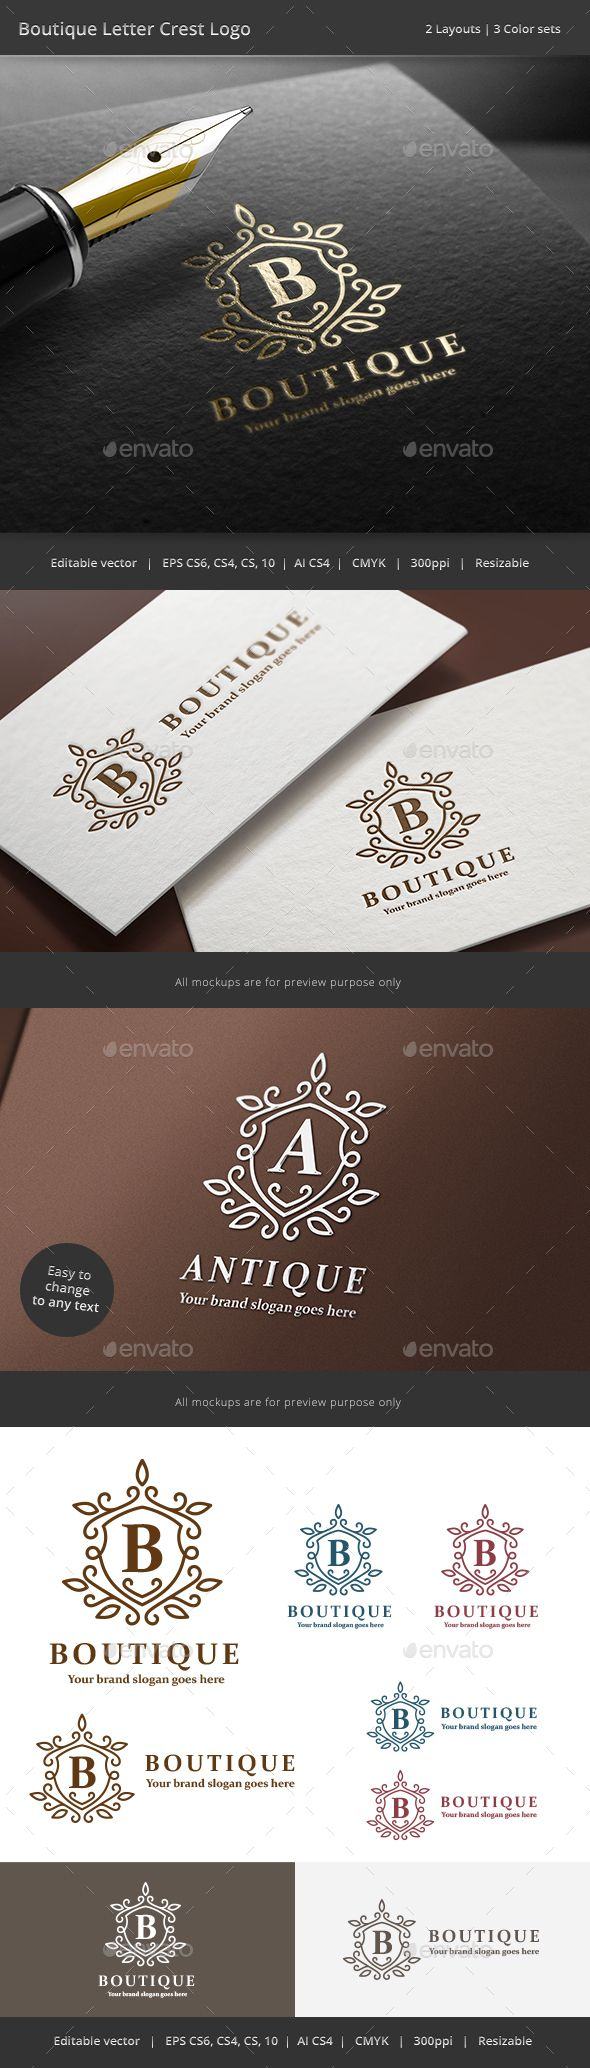 Boutique Letter Crest Logo Template Vector EPS, AI #logotype Download: http://graphicriver.net/item/boutique-letter-crest-logo/14204302?ref=ksioks